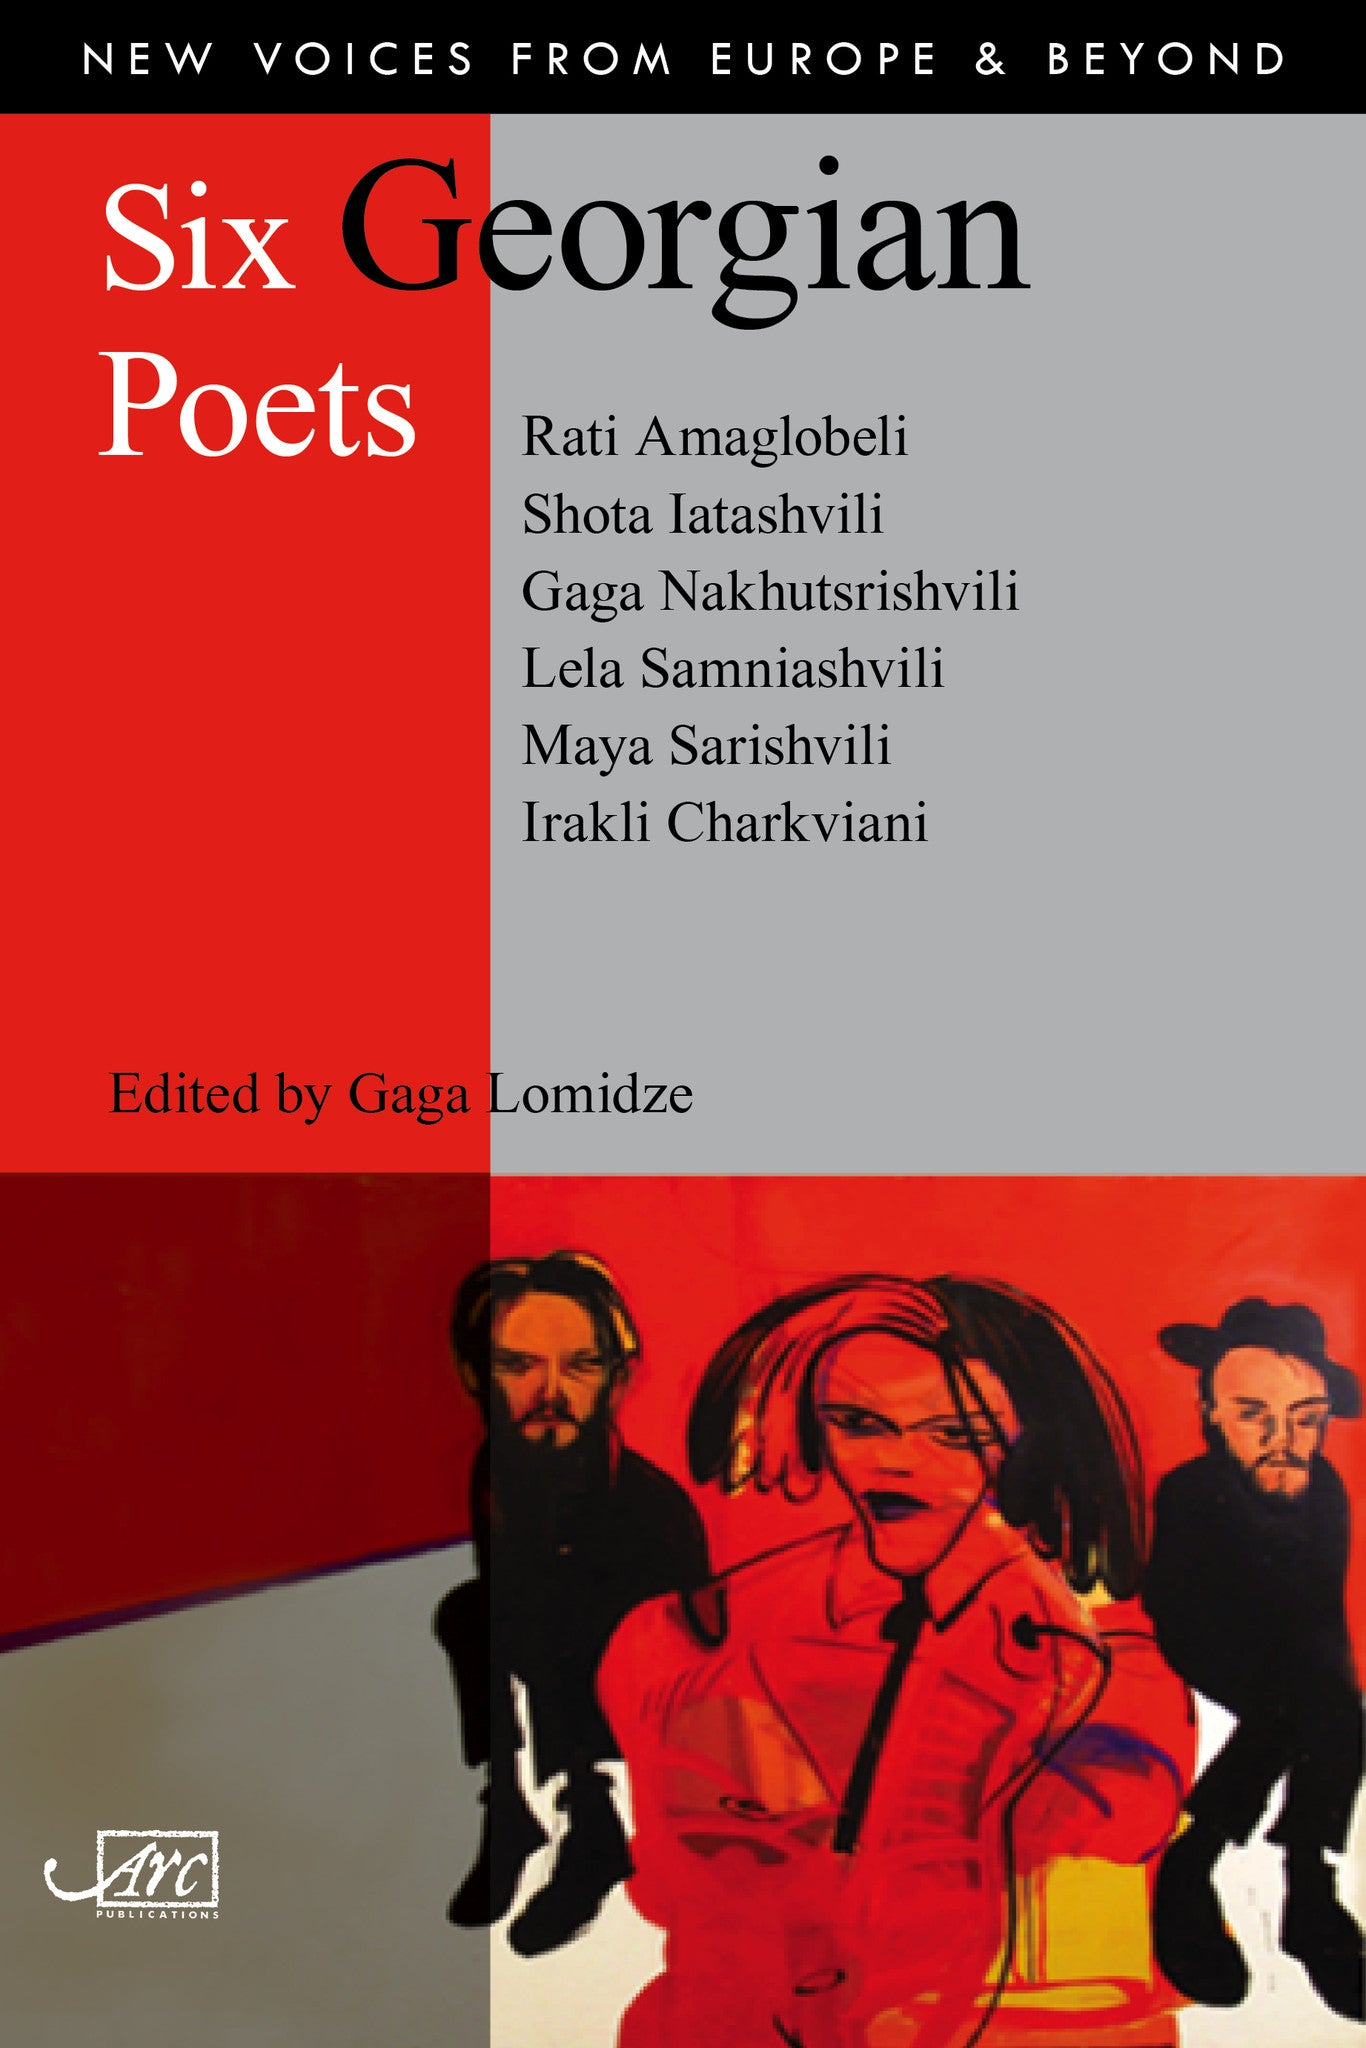 Six Georgian Poets